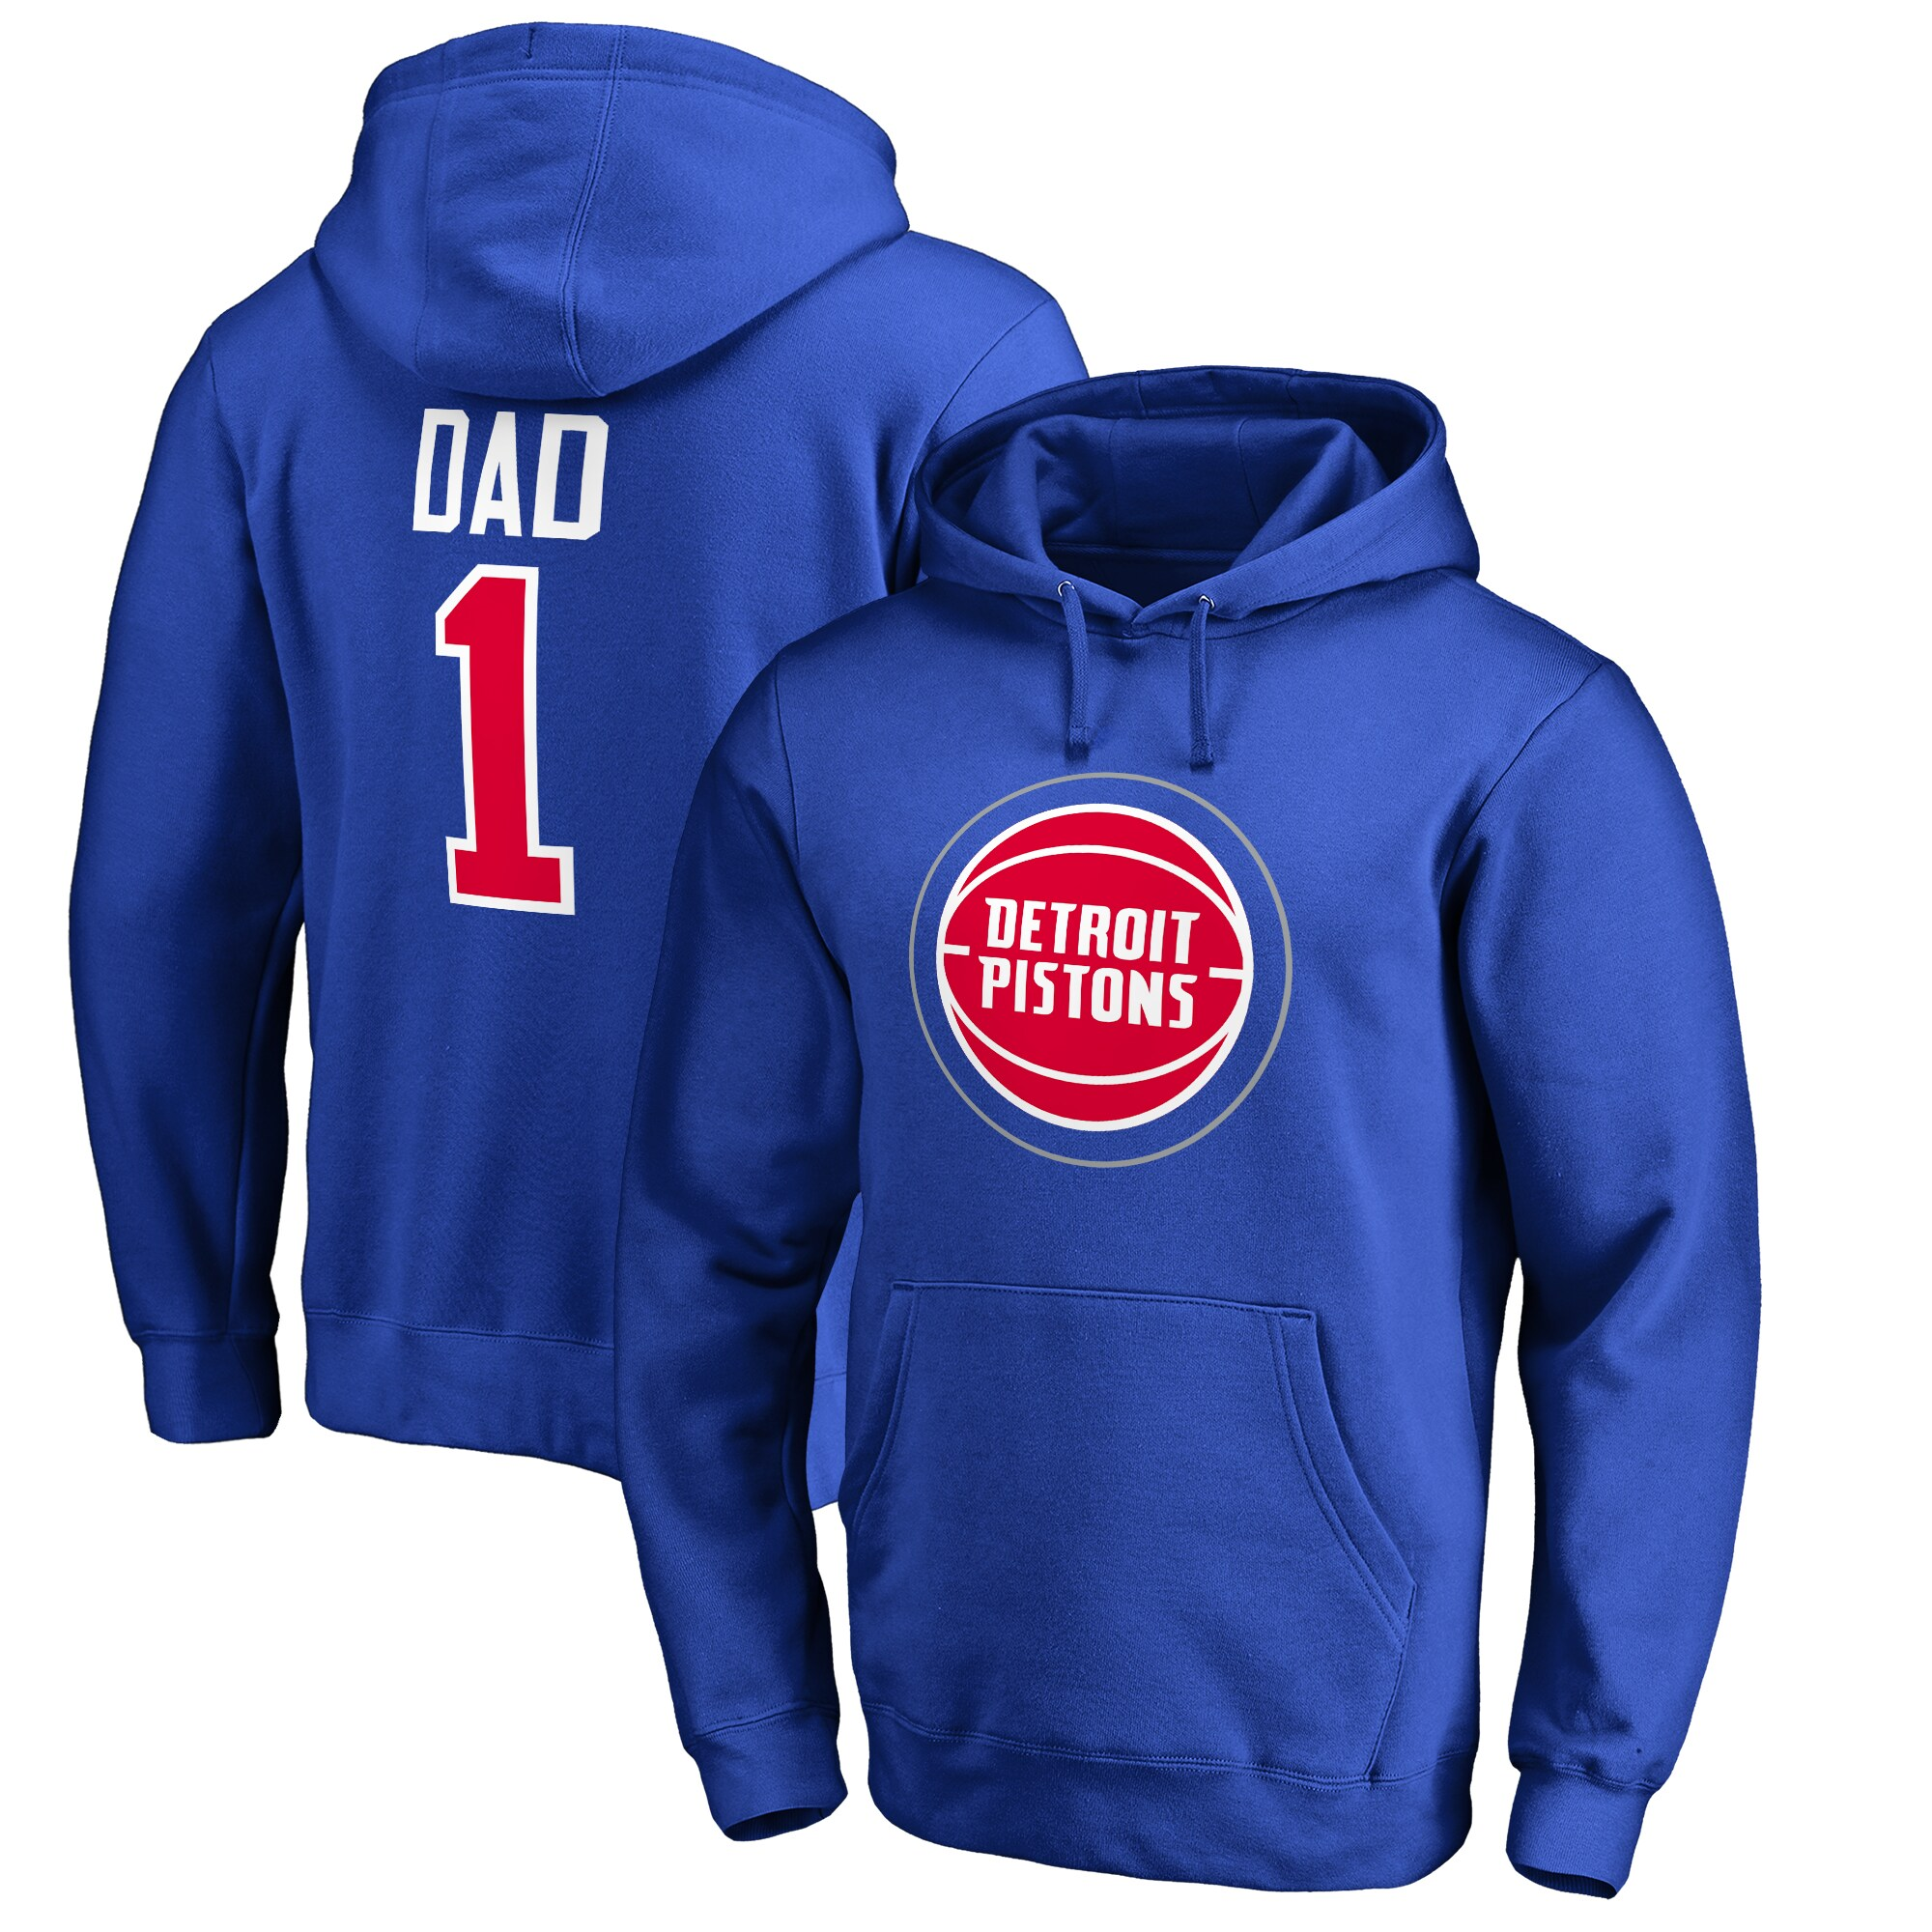 Detroit Pistons #1 Dad Pullover Hoodie - Royal